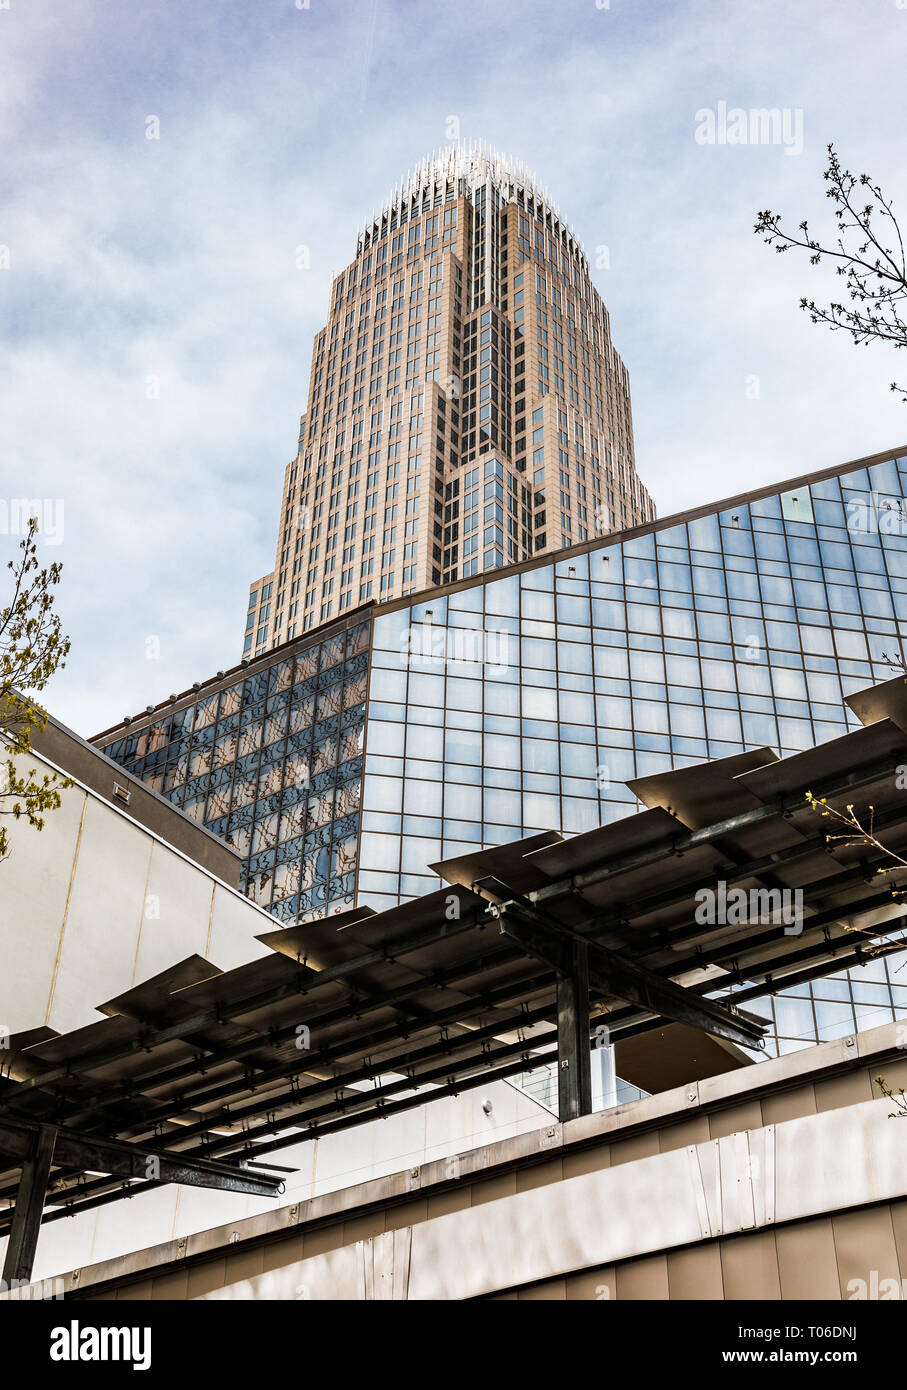 CHARLOTTE, NC, USA-3/16/19: The Bank of America Corporate Center towers above the Charlotte skyline. Stock Photo